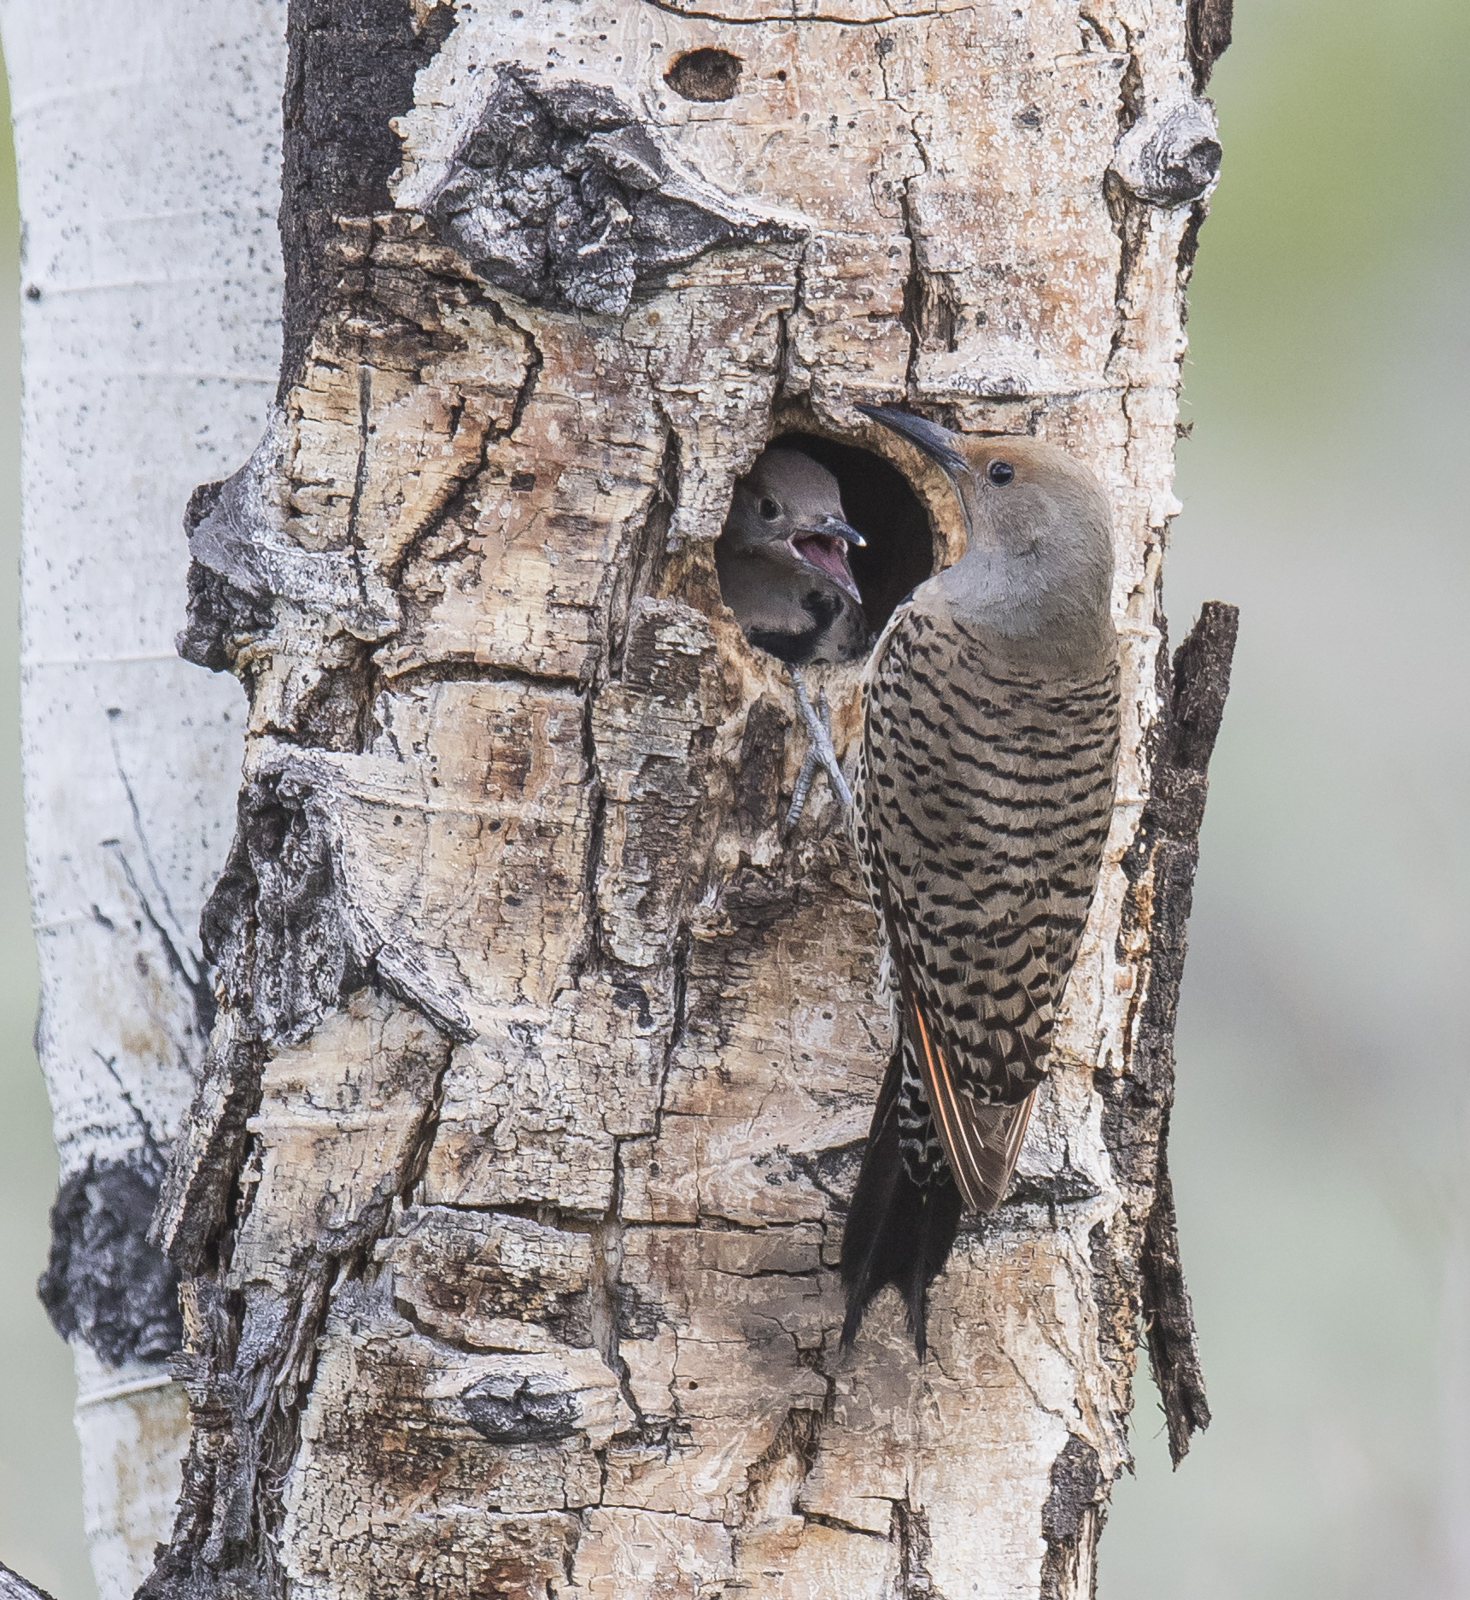 Flicker at nest